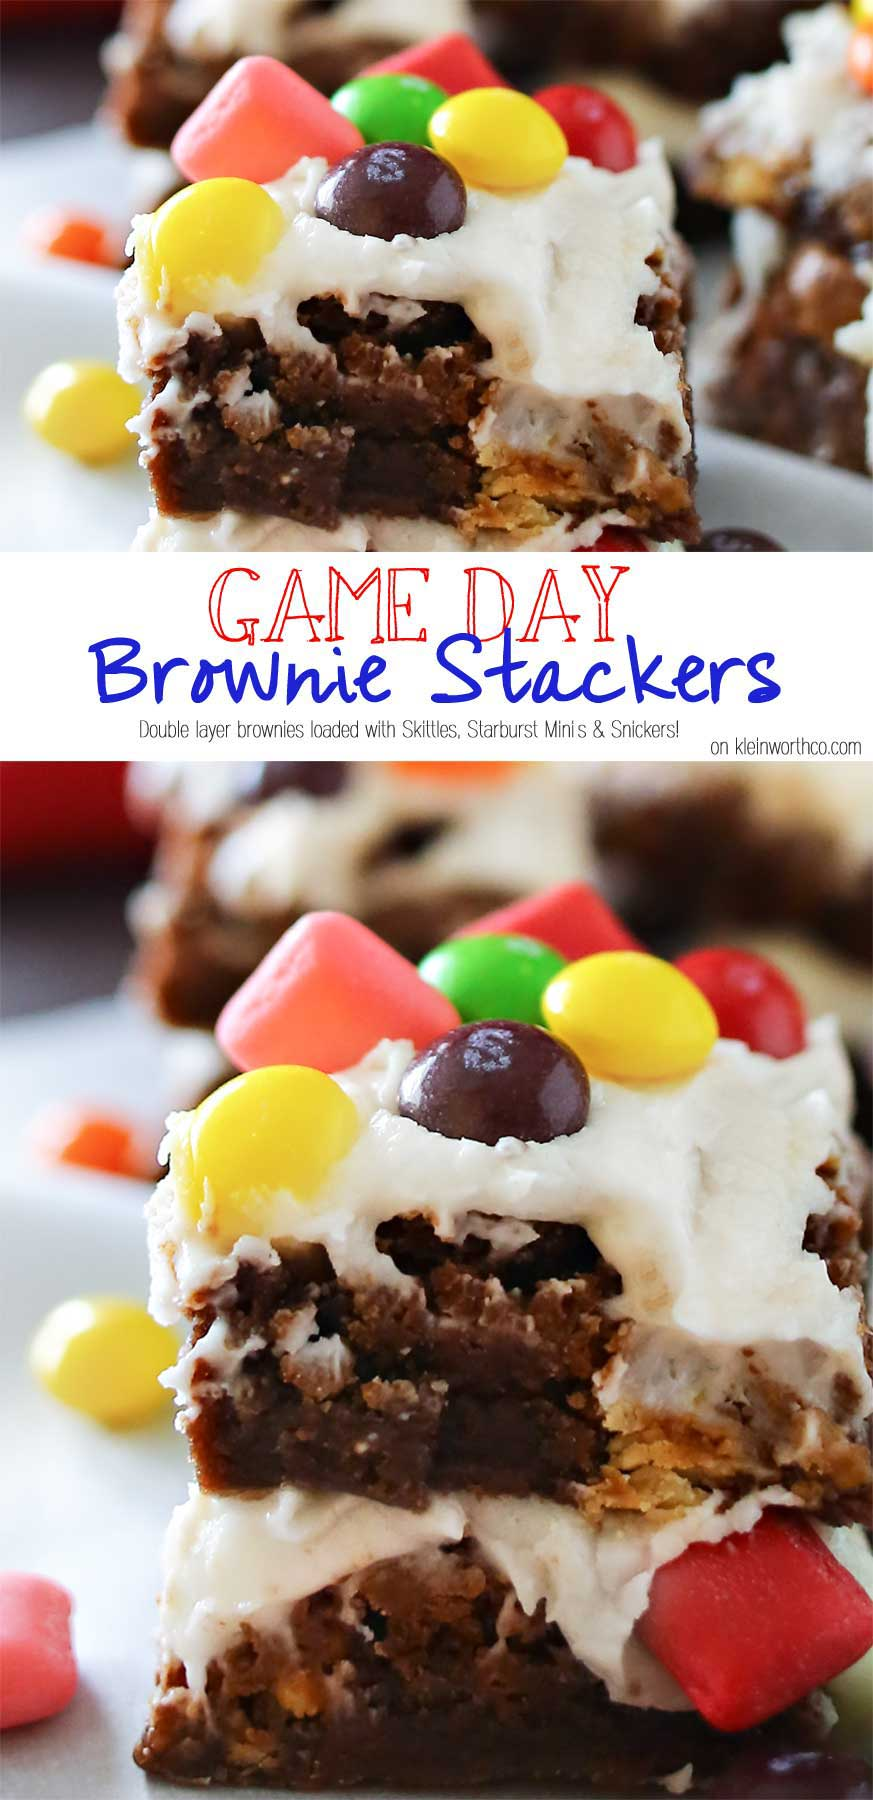 Game Day Brownie Stackers